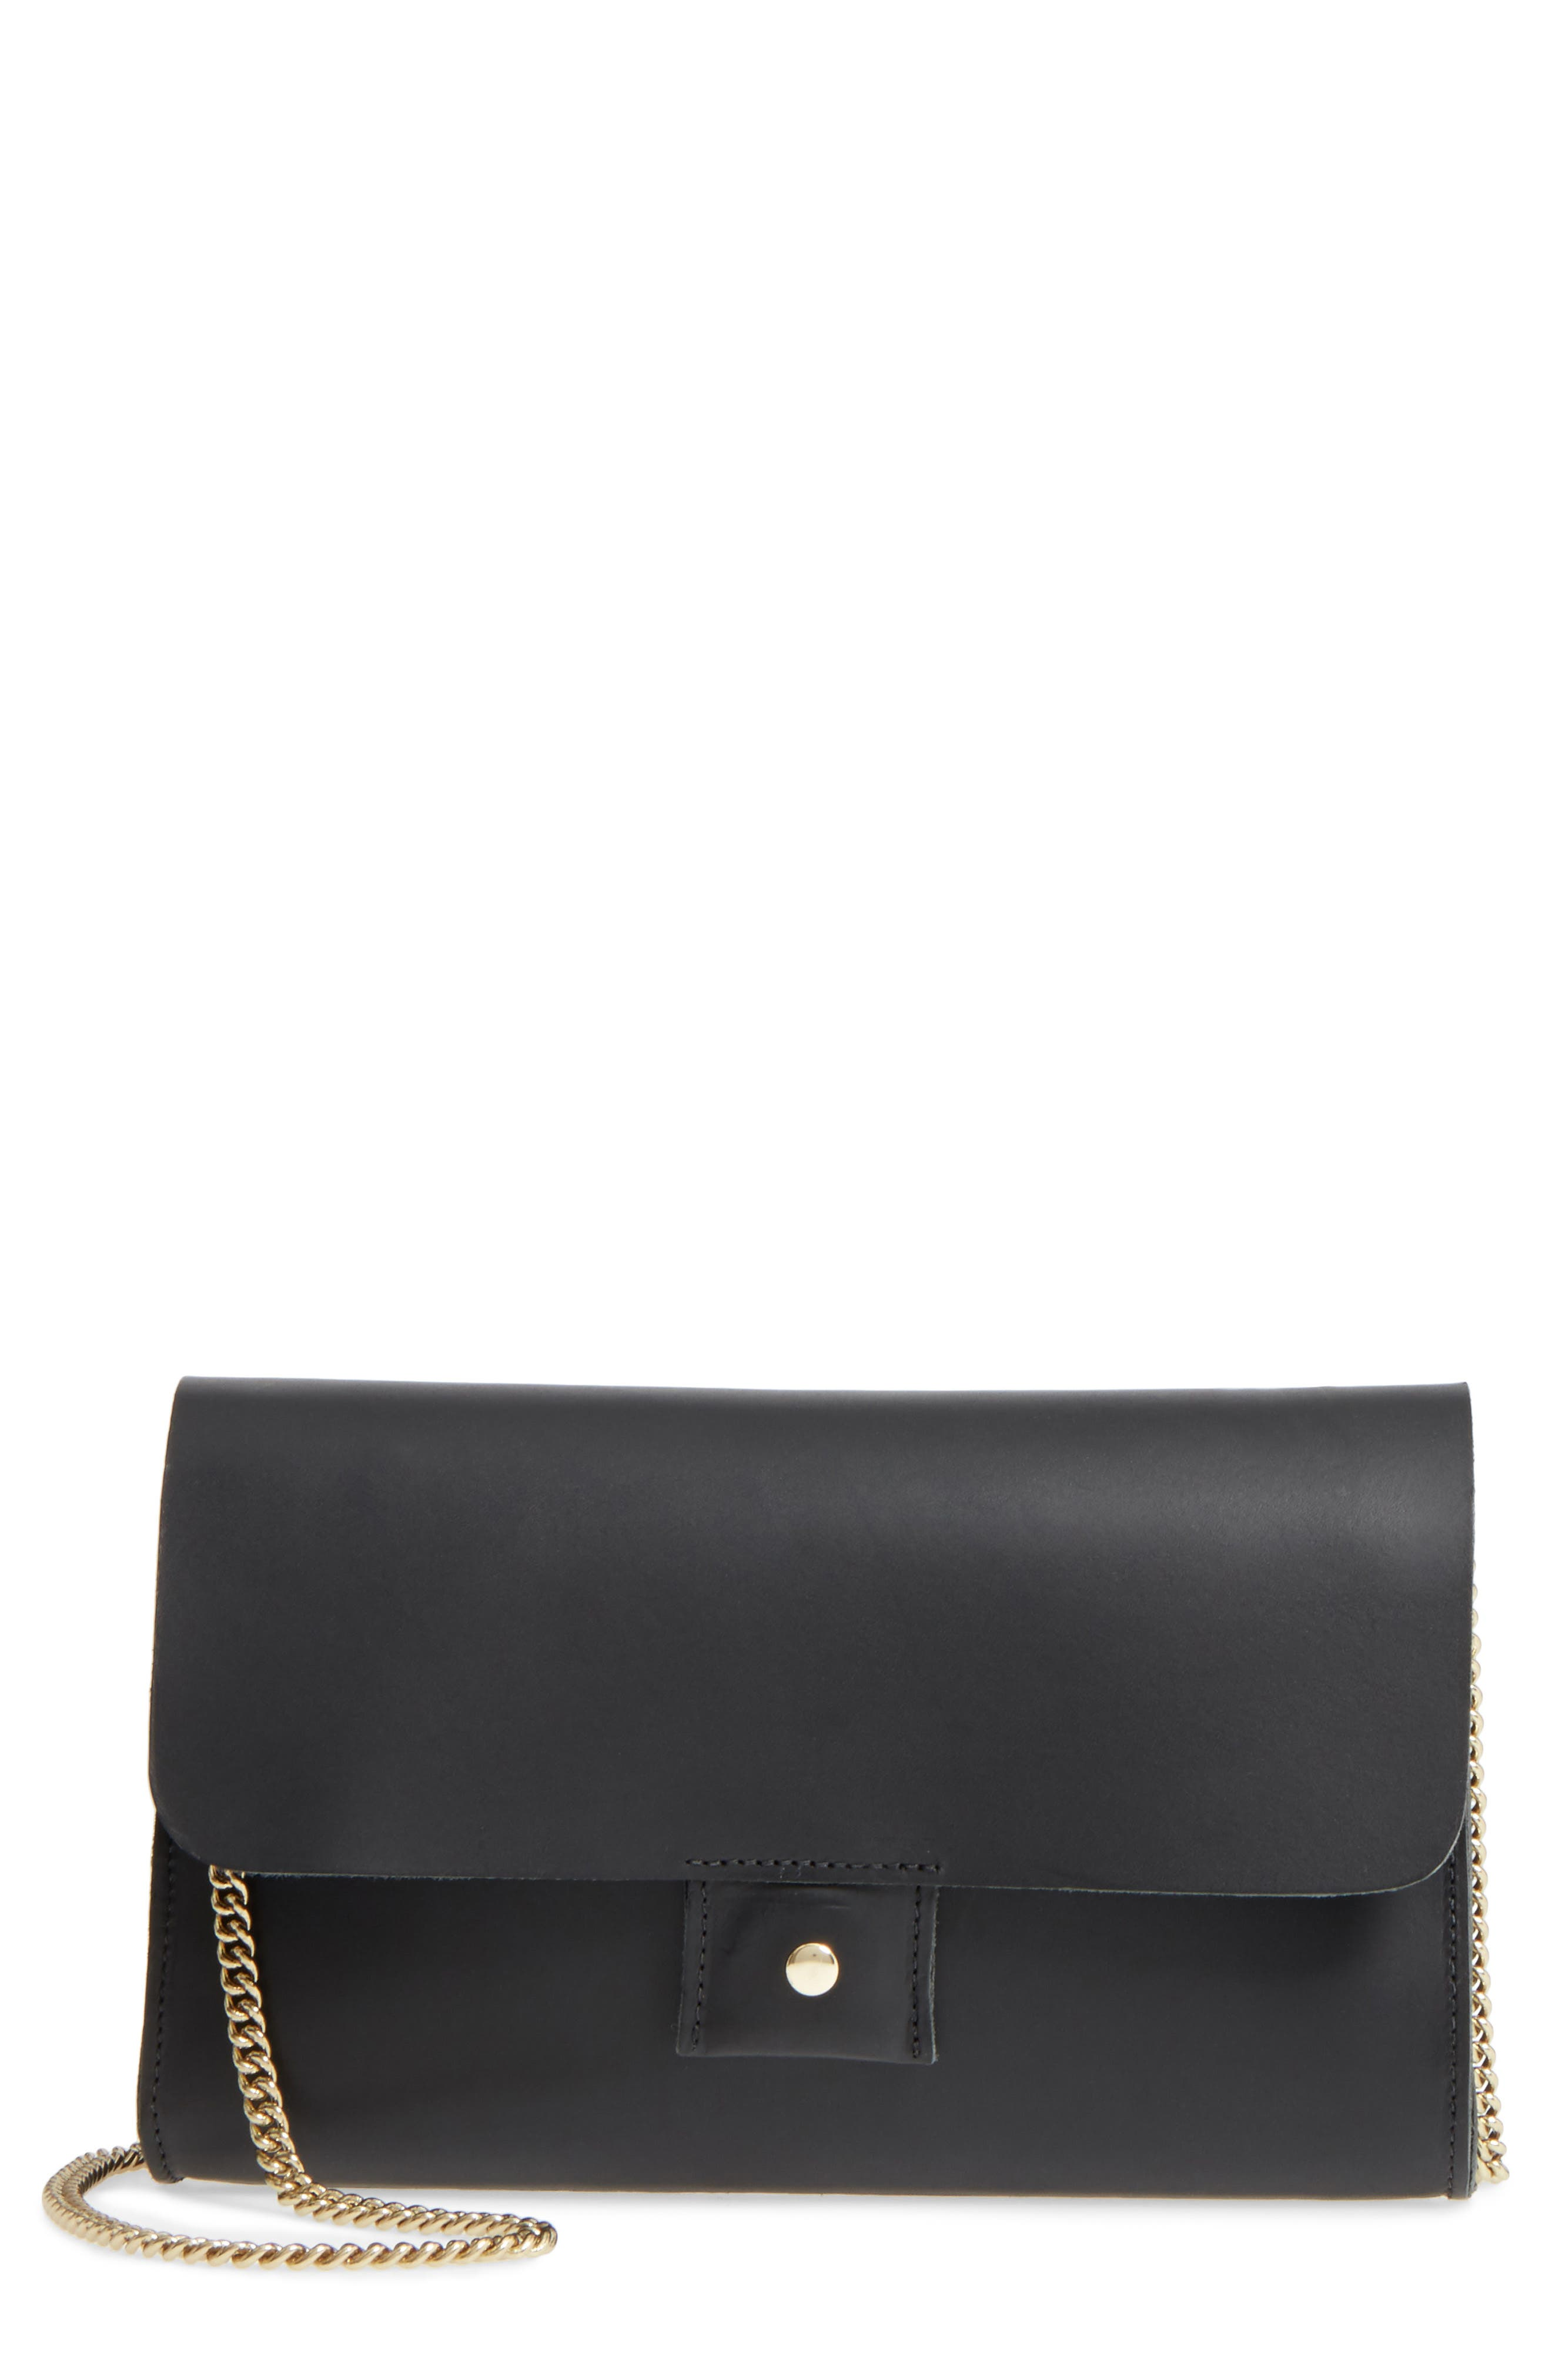 Clare V. Colette Maison Leather Crossbody Bag